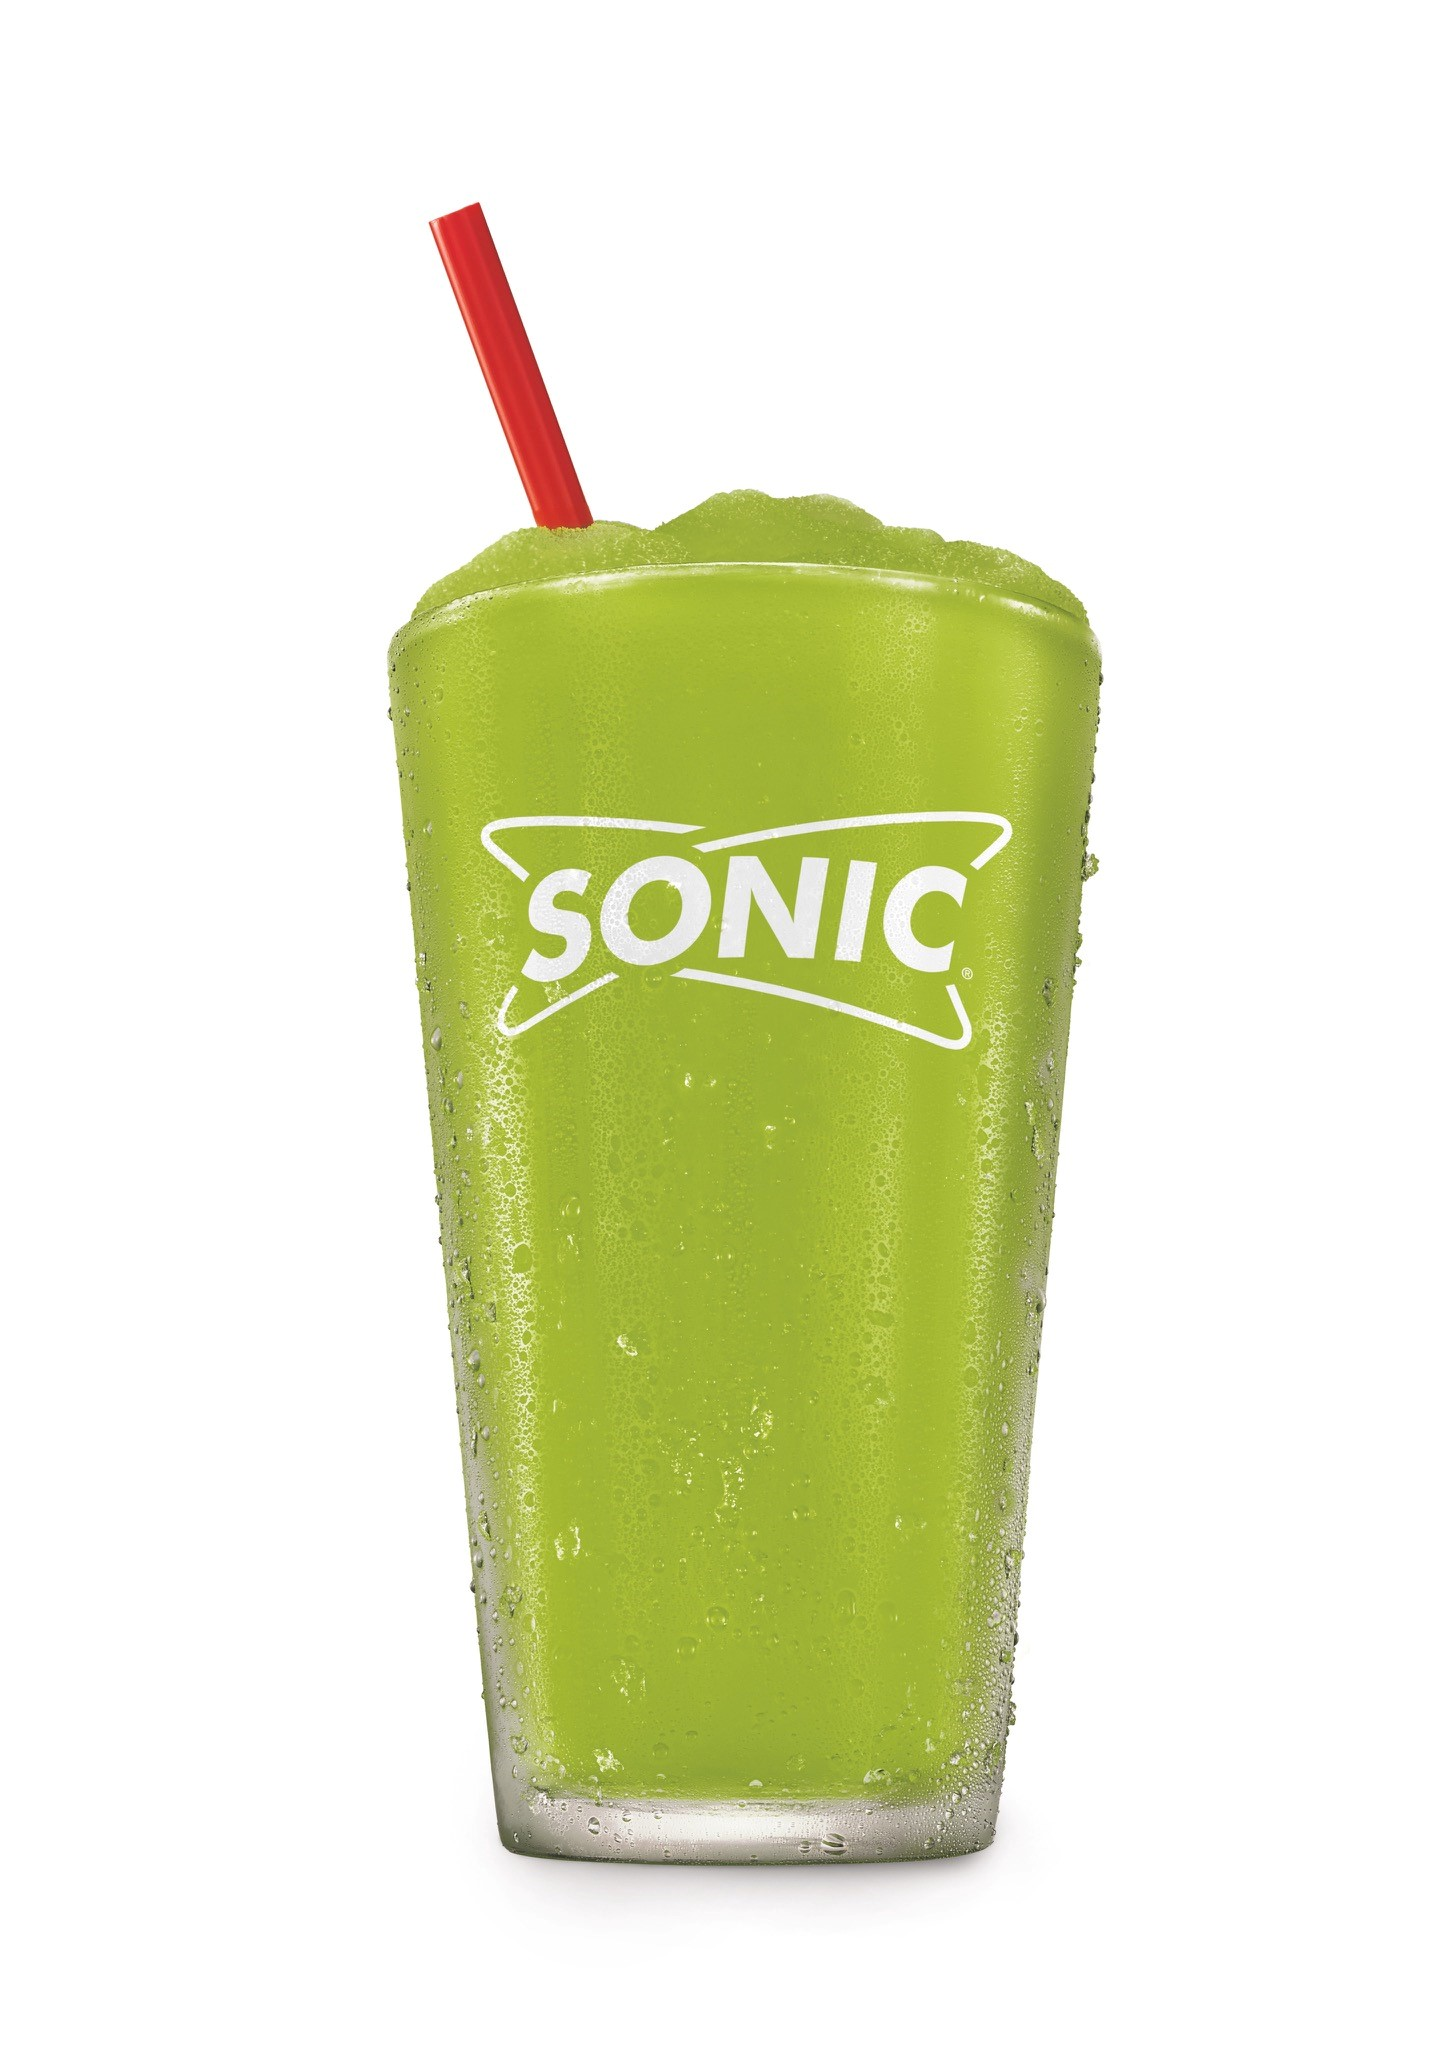 Luxurious Sonic Pickle Sonic To Release New Pickle Juice Flavored Slush Across Us This Sonic Slush Flavors Miami Sunrise Sonic Slush Flavors Polynesian Punch nice food Sonic Slush Flavors